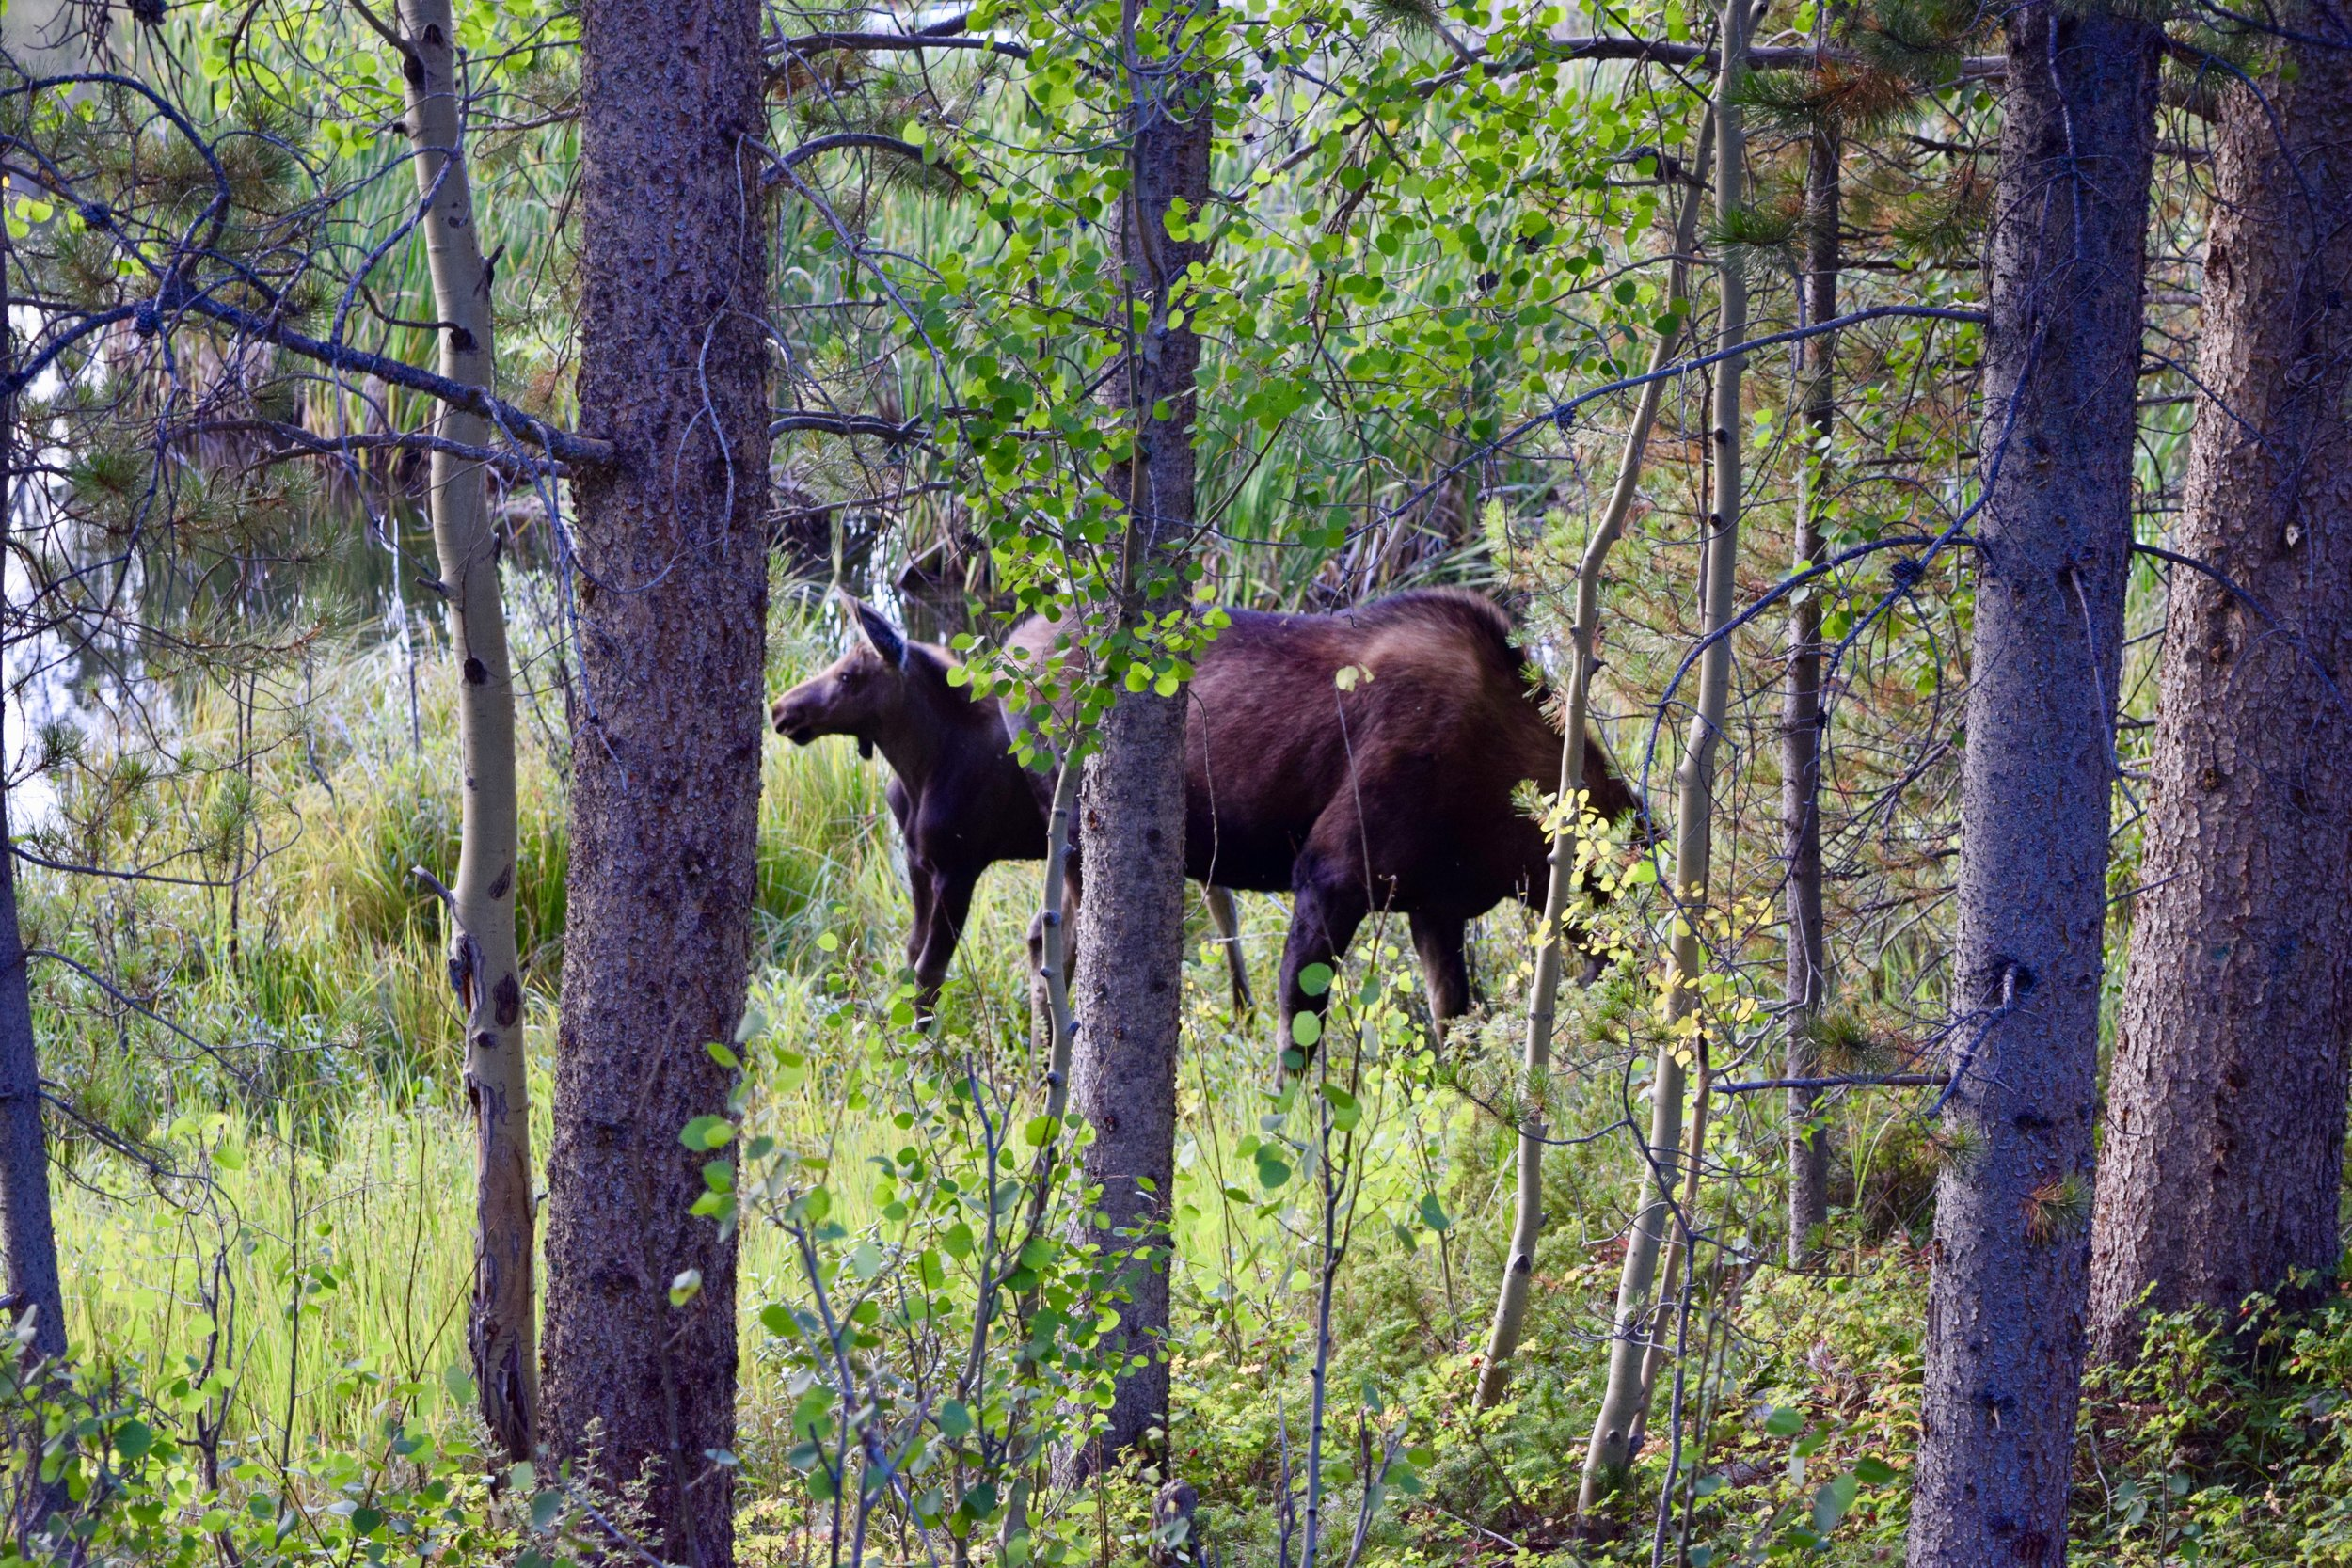 And little baby moose!